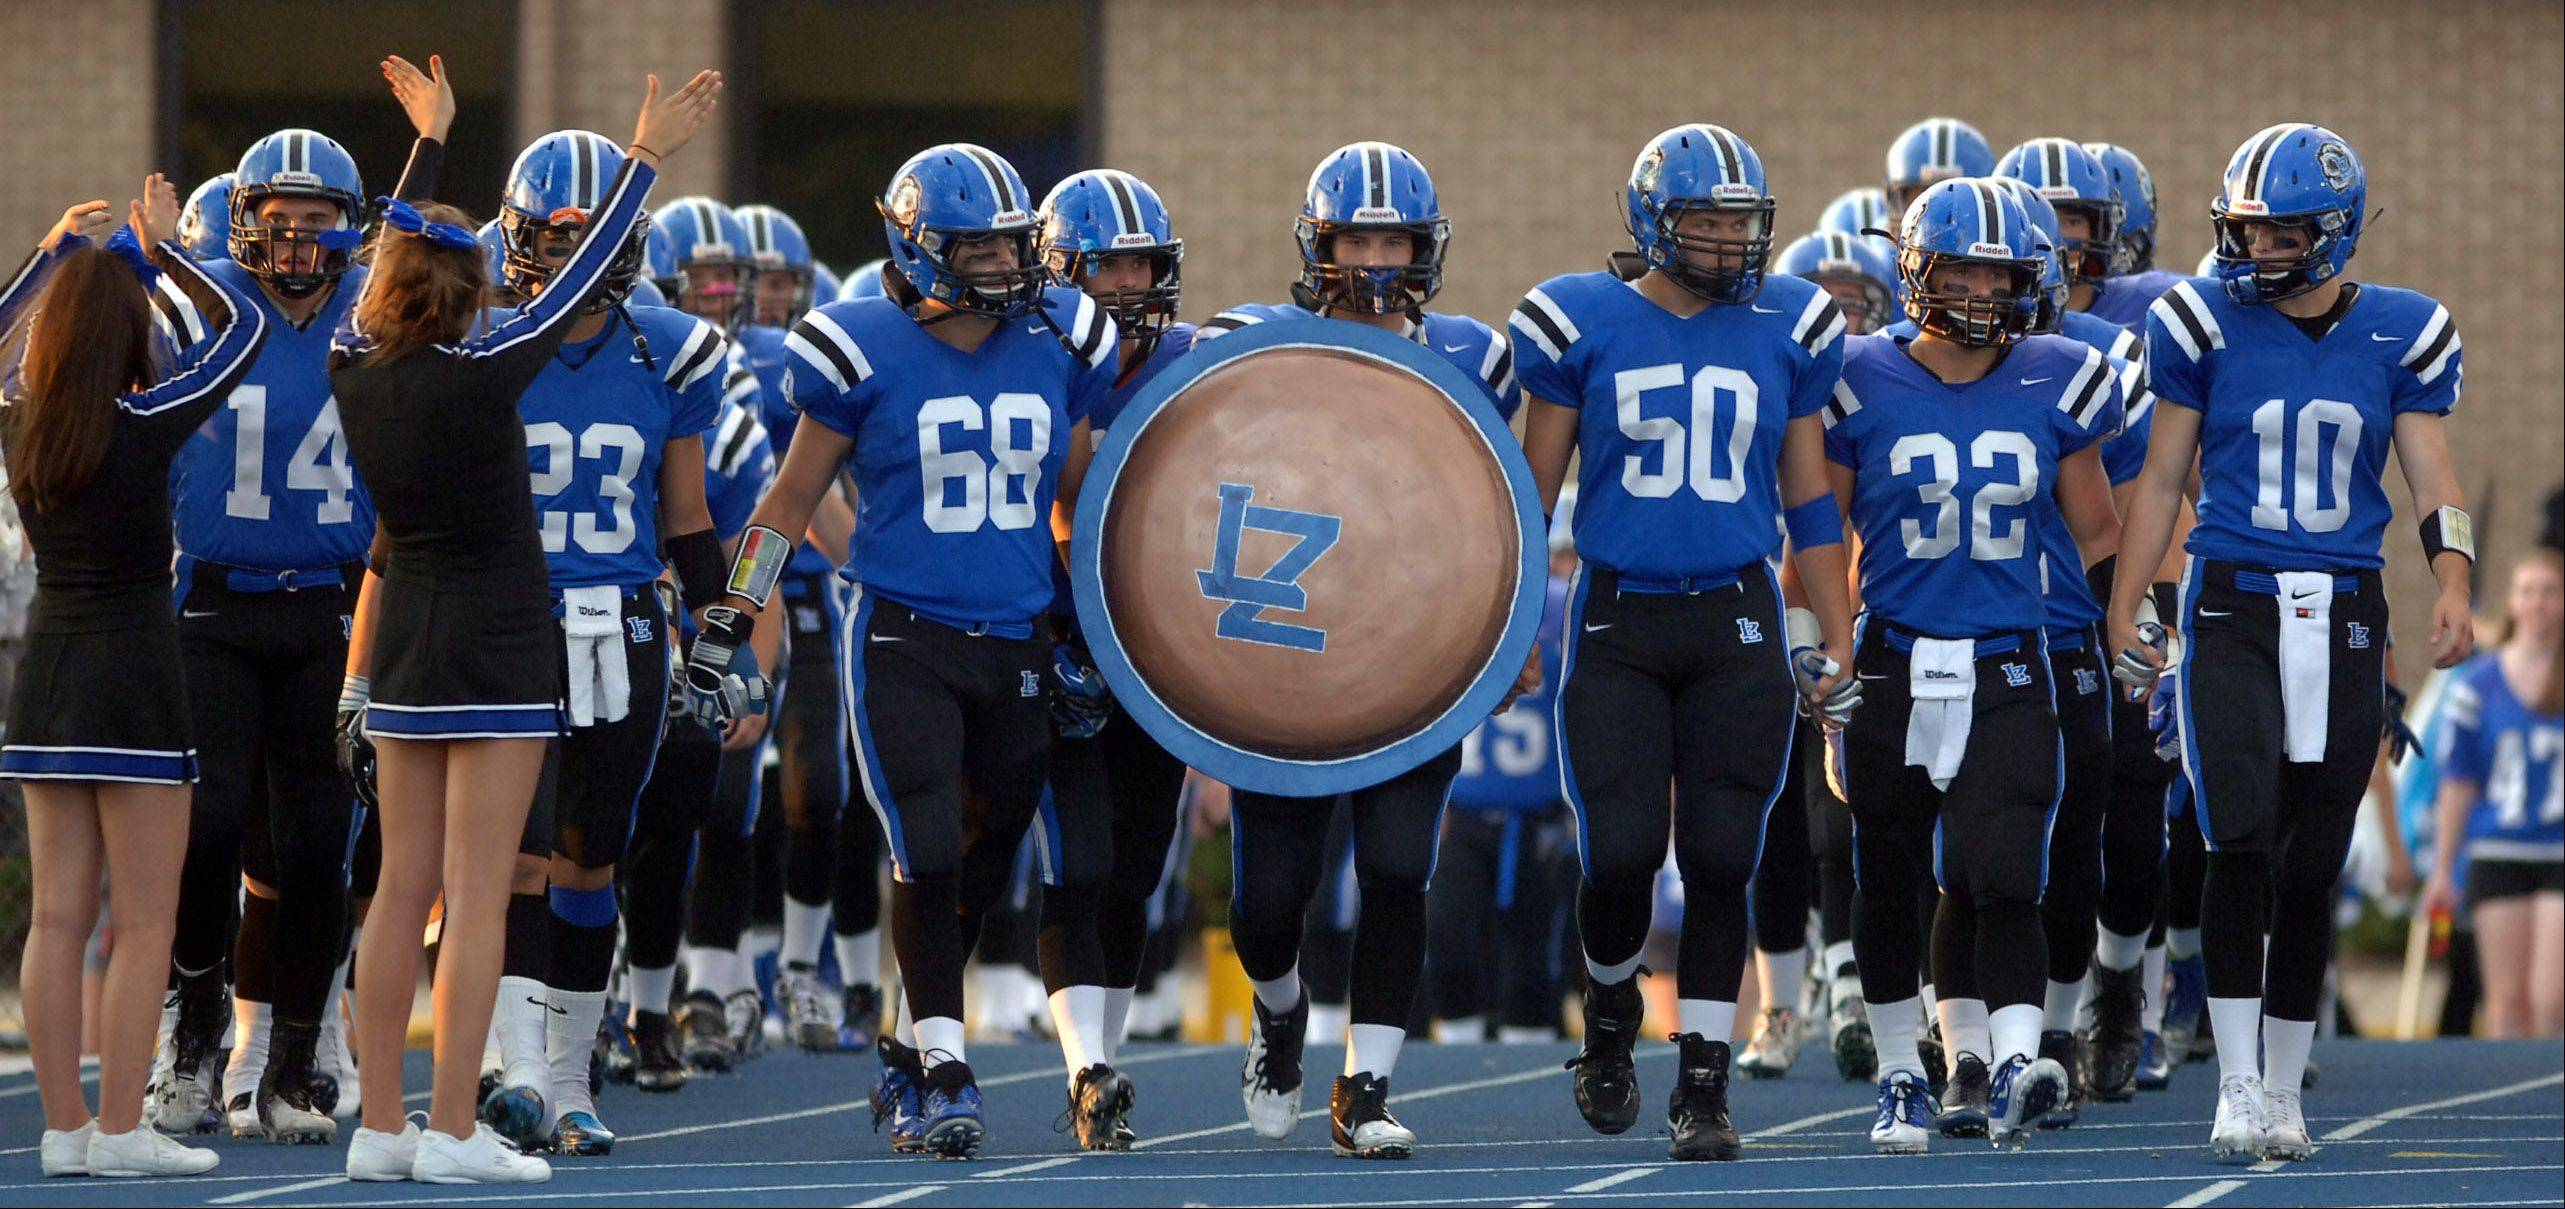 The Lake Zurich Bears head onto the field to face the Fremd Vikings .